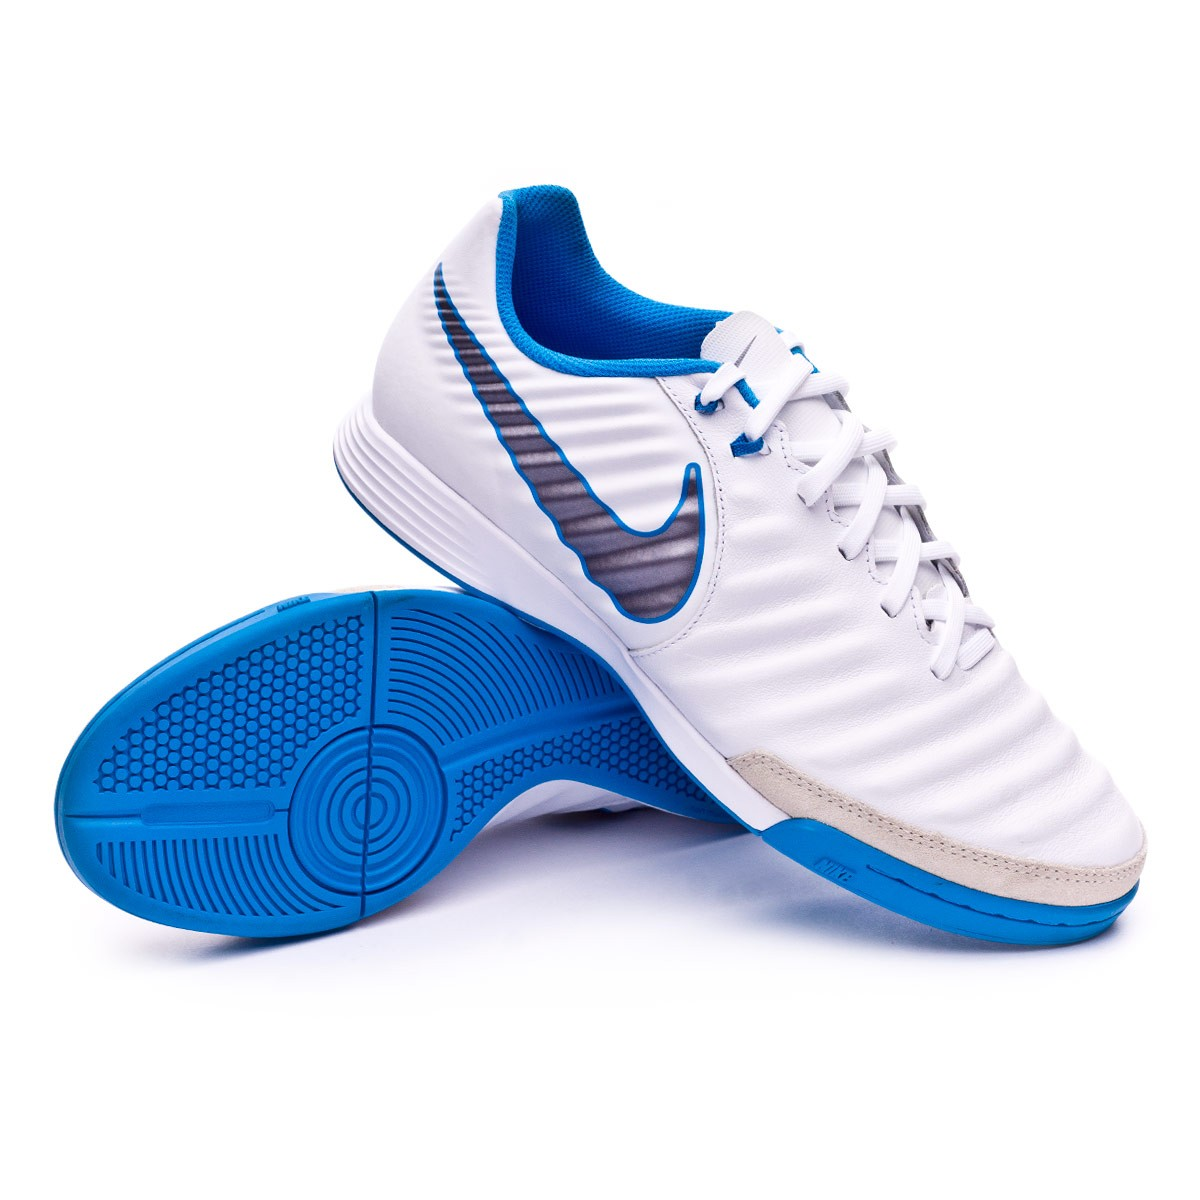 0e67f3ce6 Nike Tiempo LegendX VII Academy IC Futsal Boot. White-Metallic cool grey-Blue  hero ...